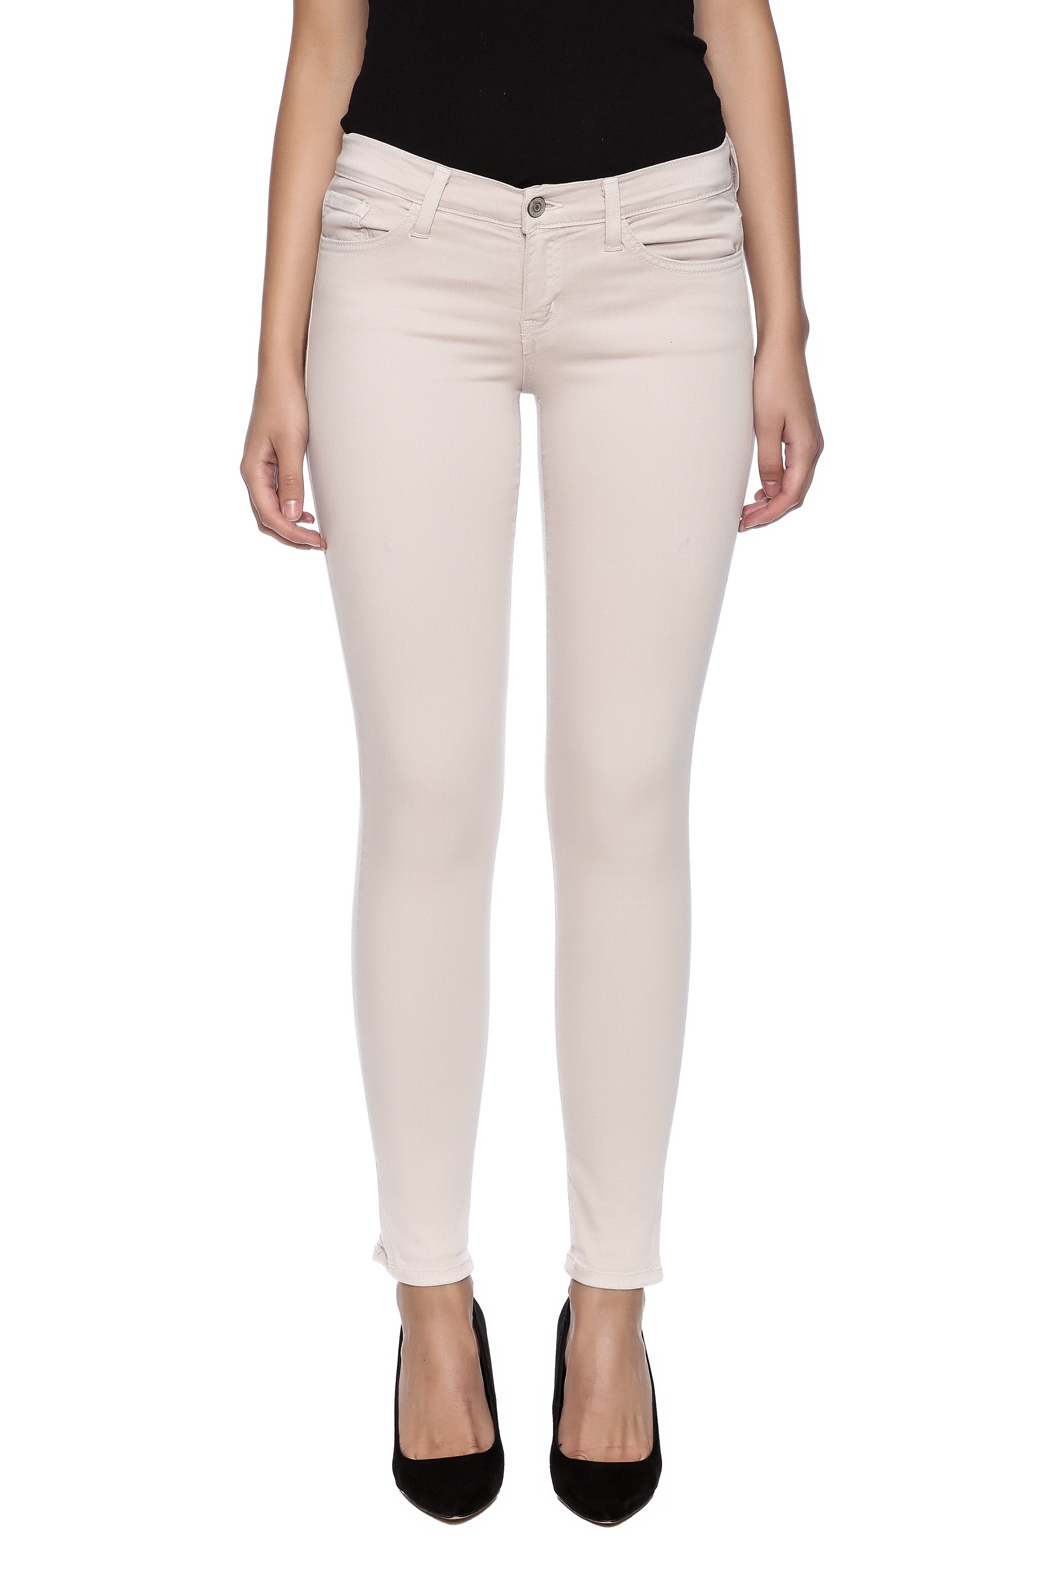 Flying Monkey Nude Jeans - Side Cropped Image